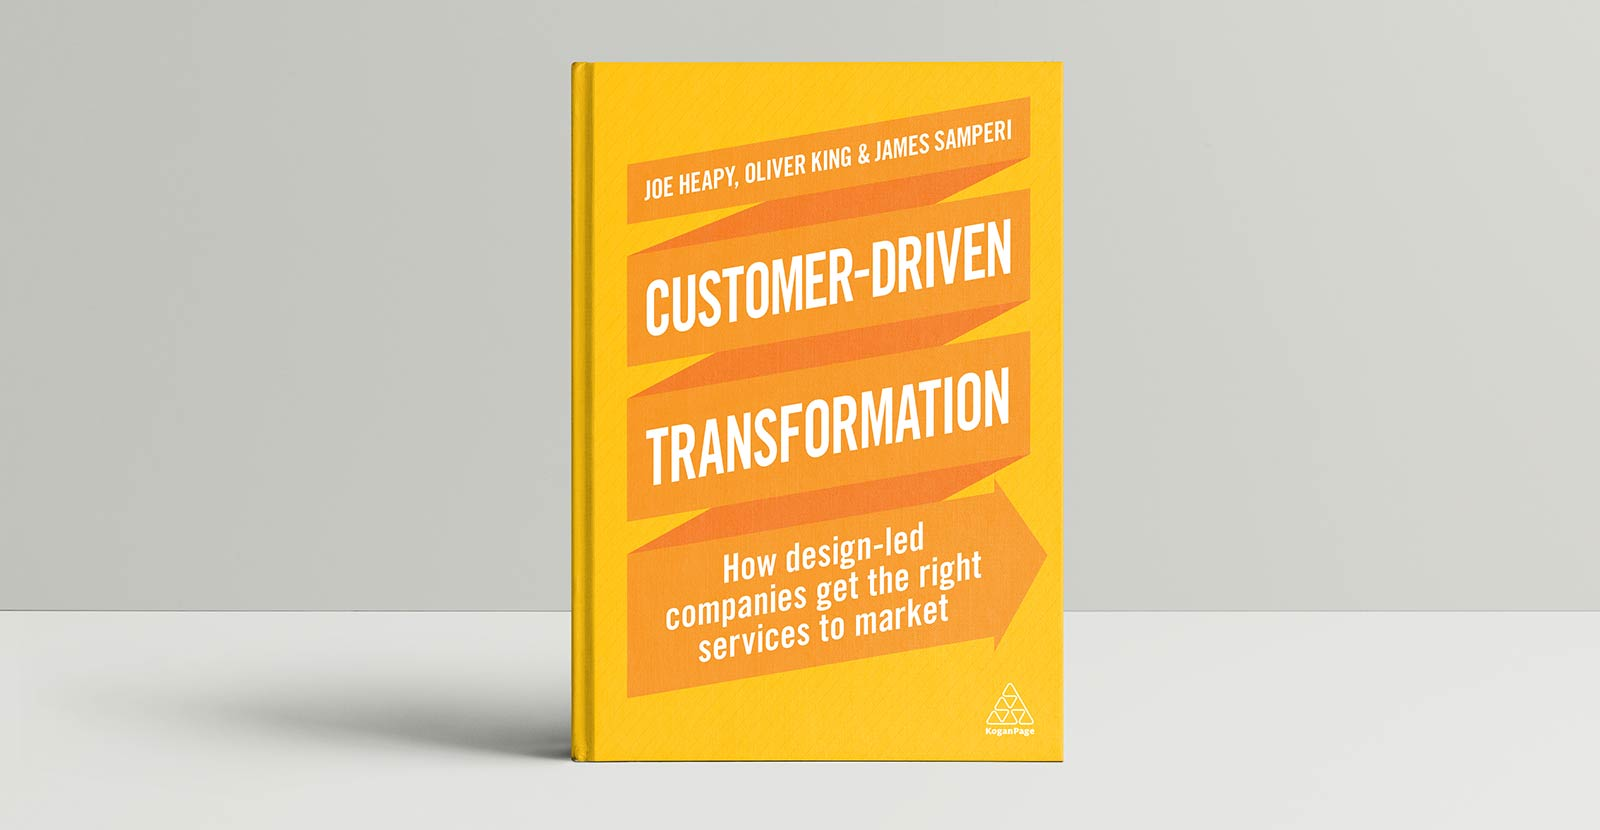 selection of the endorsements of the customer-driven transformation book